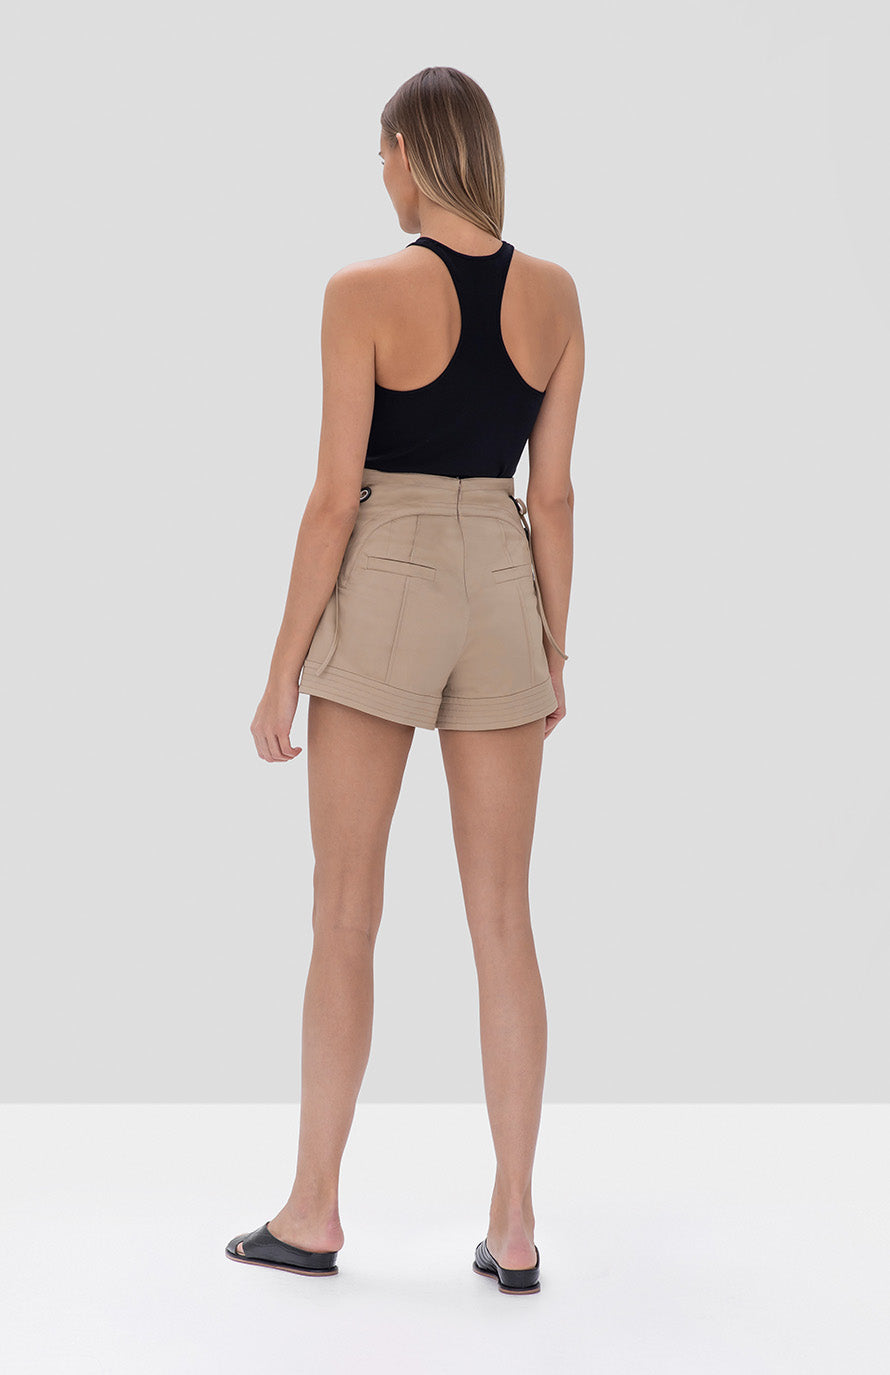 winnick shorts tan - Rear View